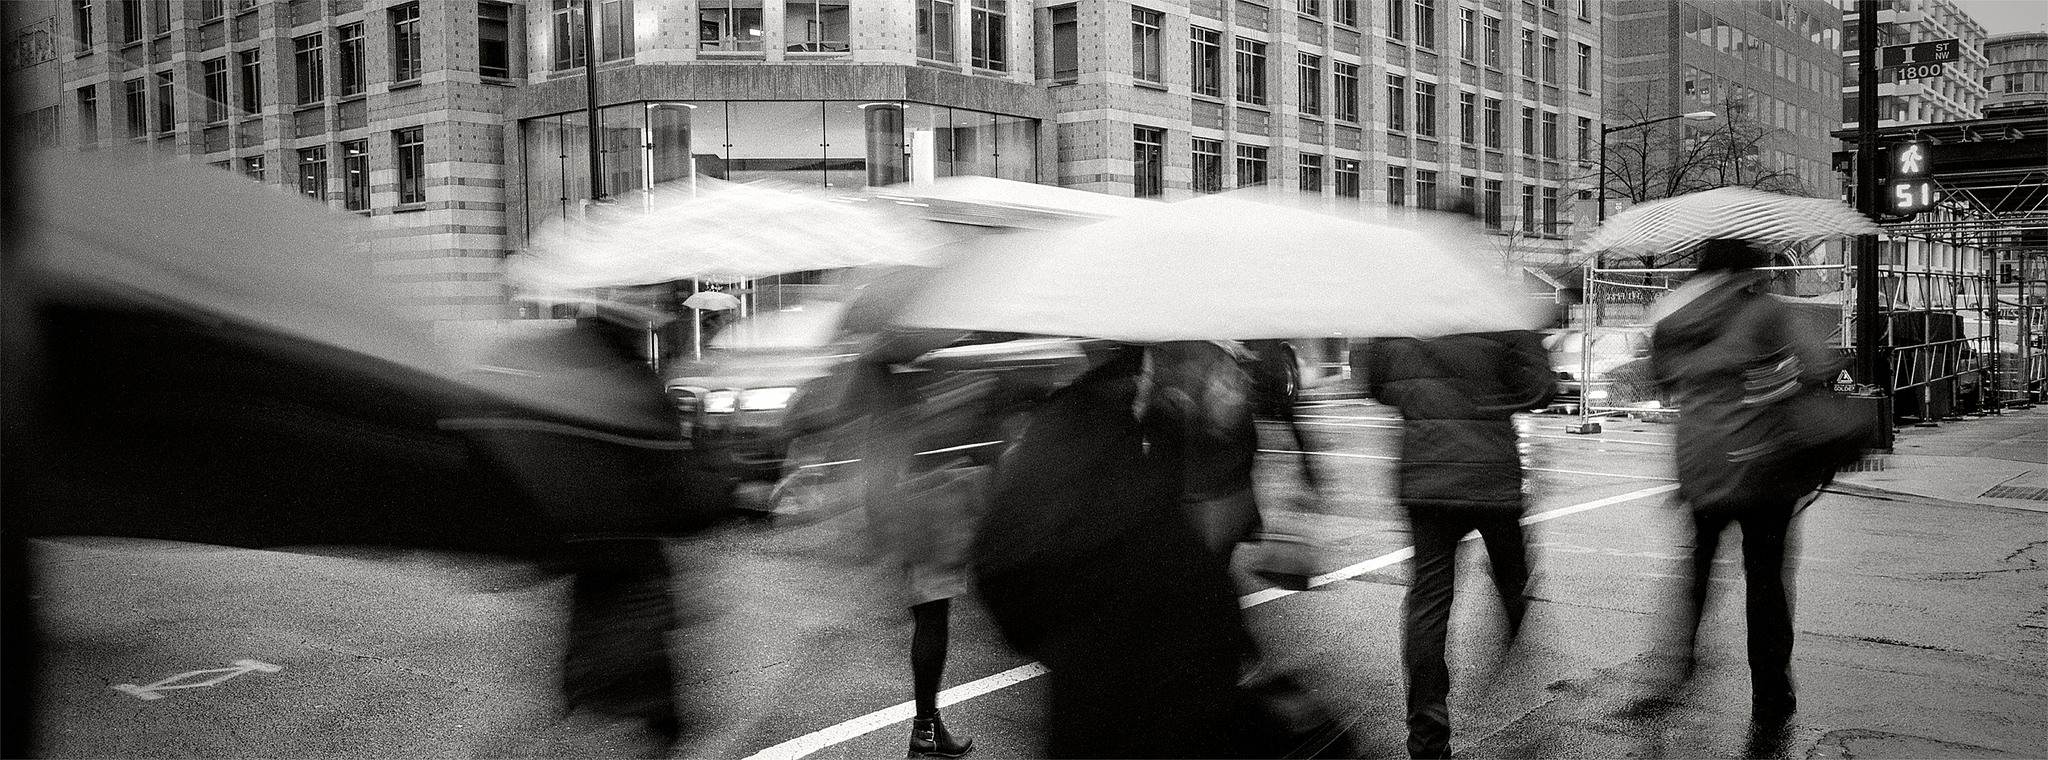 Umbrellas in Motion, 18th and I Street NW by Britt Leckman